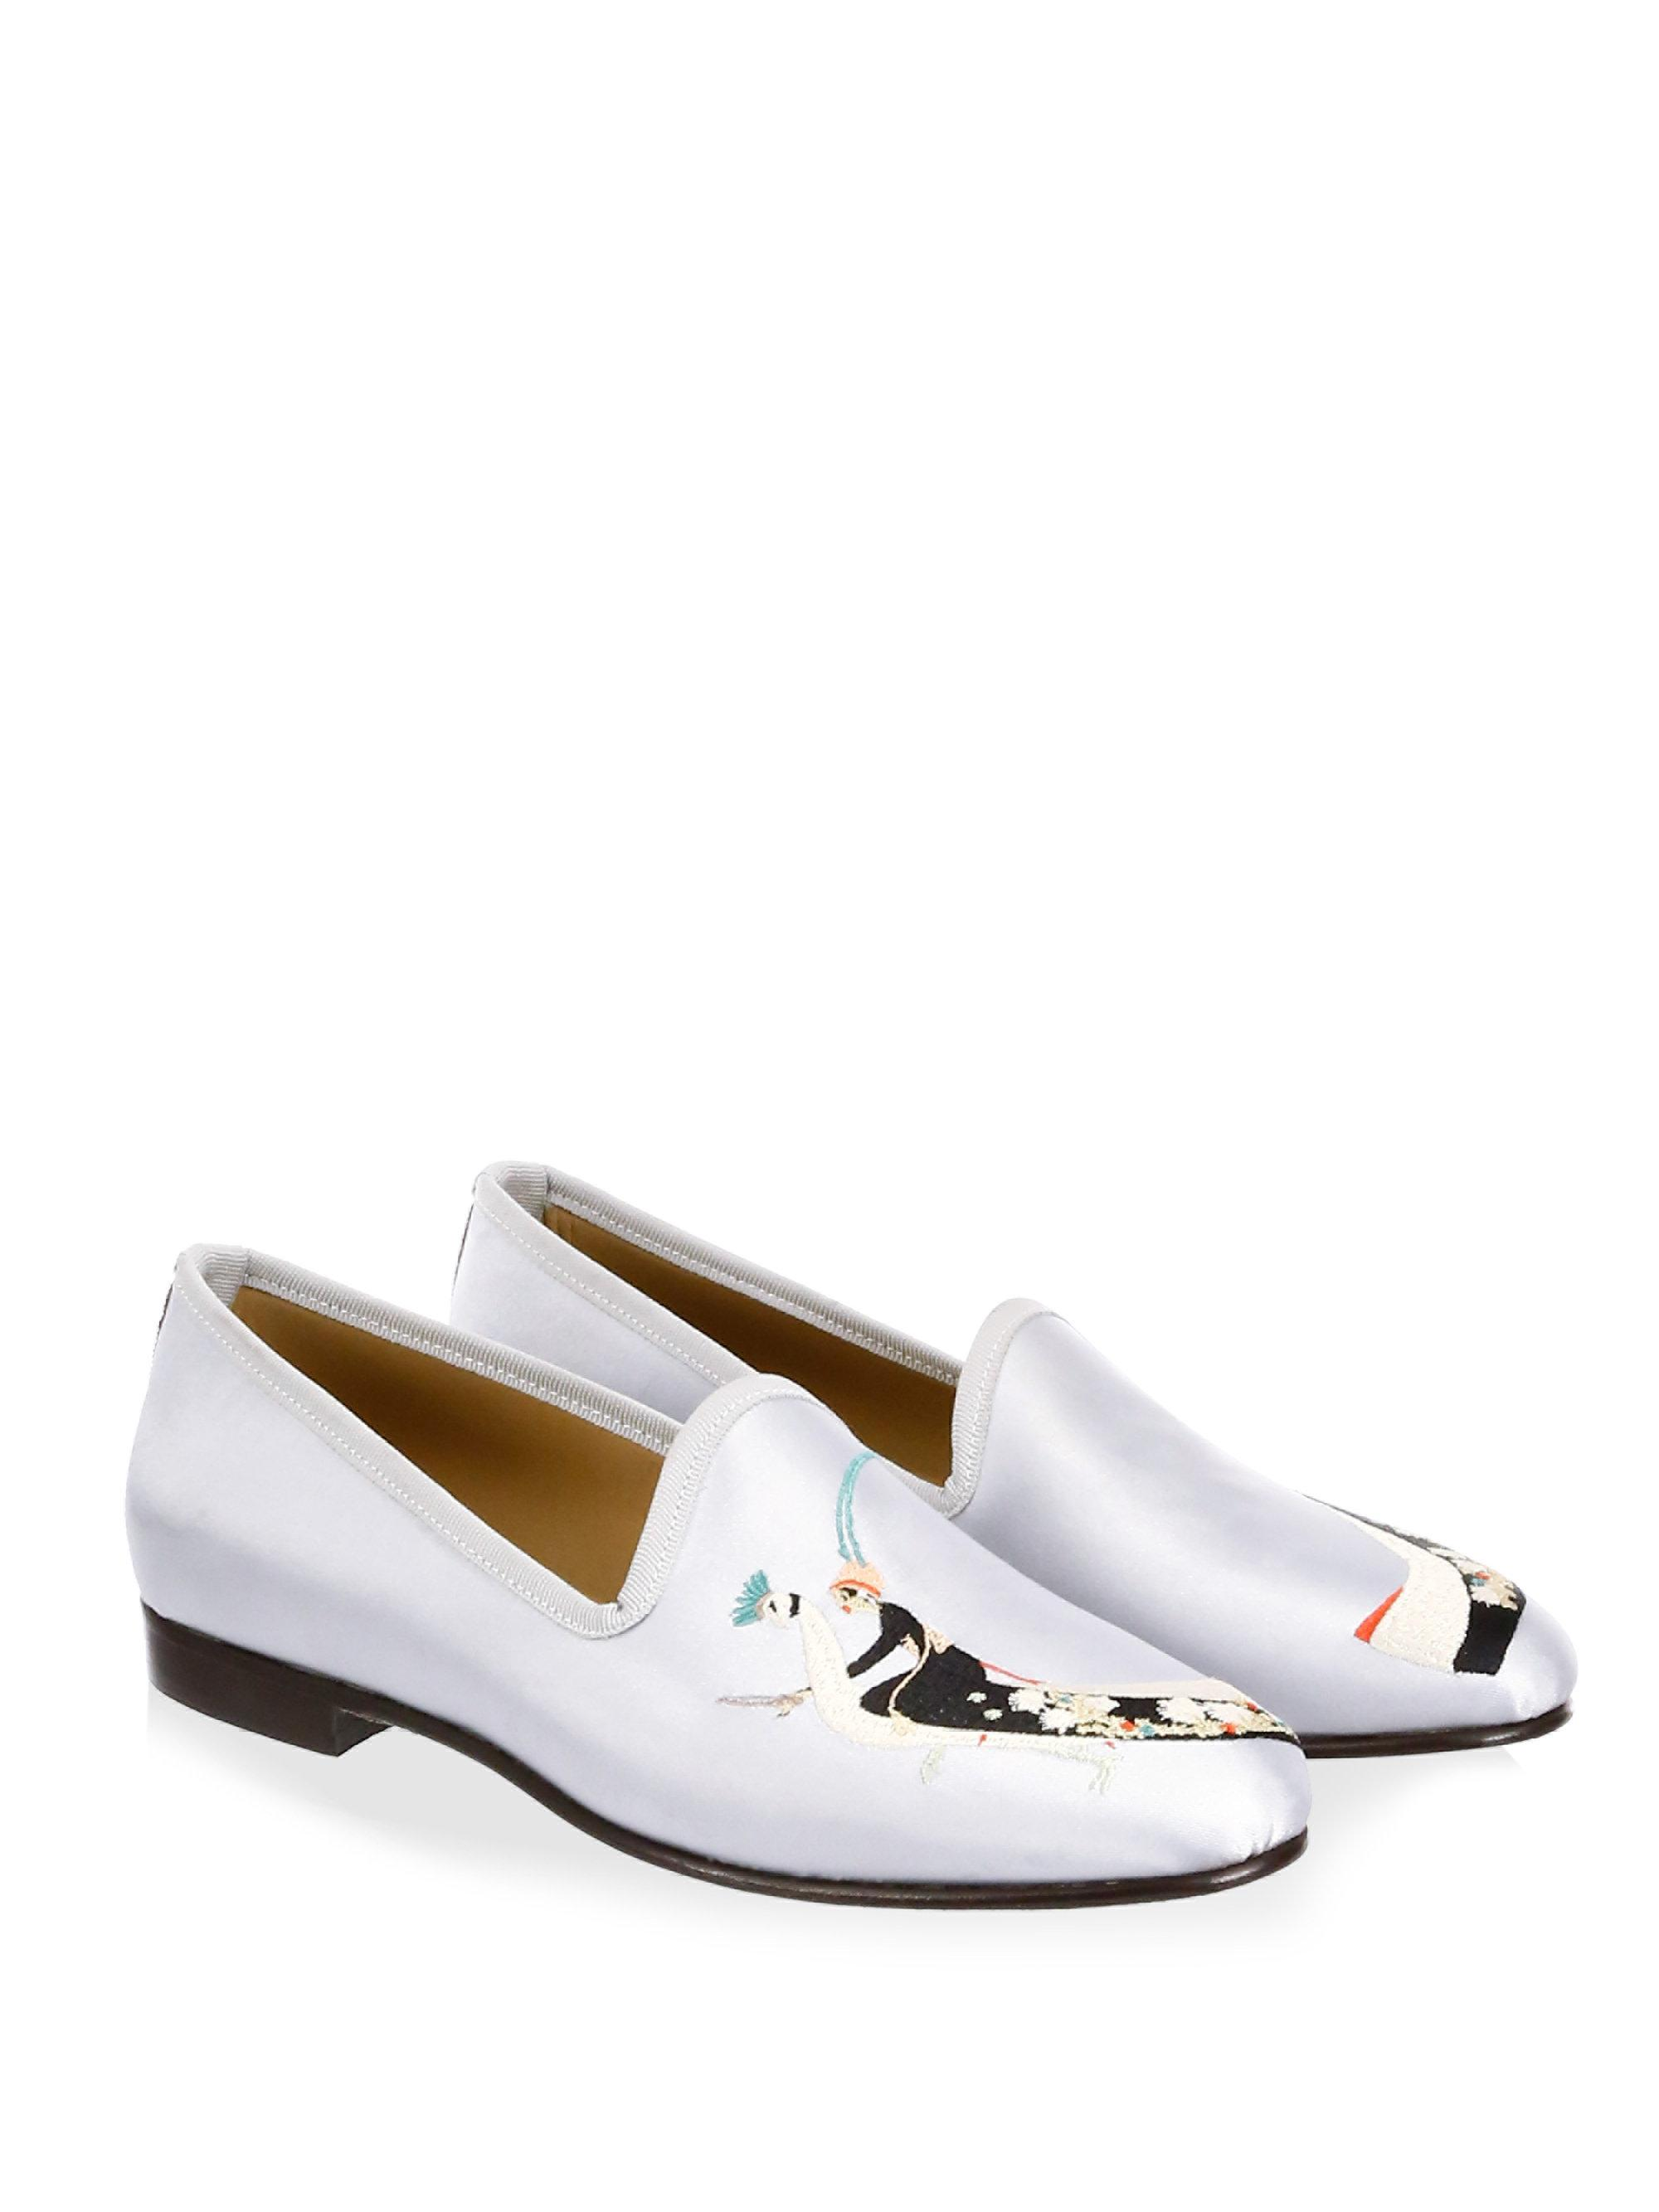 Where To Buy Del Toro Shoes